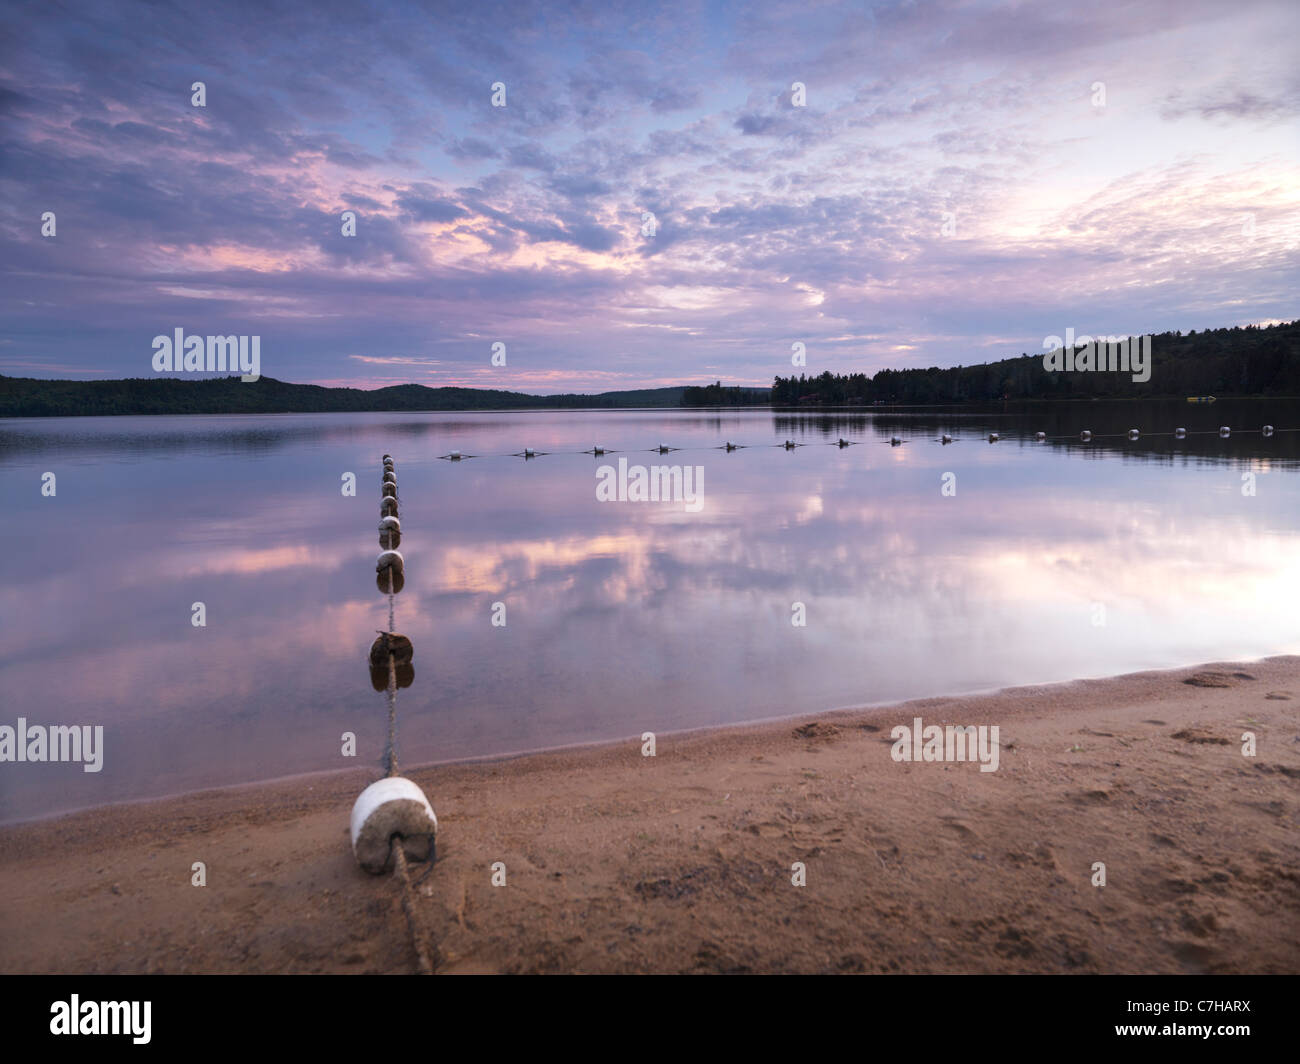 Swimming zone buoy line. Algonquin Provincial Park summertime nature scenery of the Lake of Two Rivers at sunset. - Stock Image